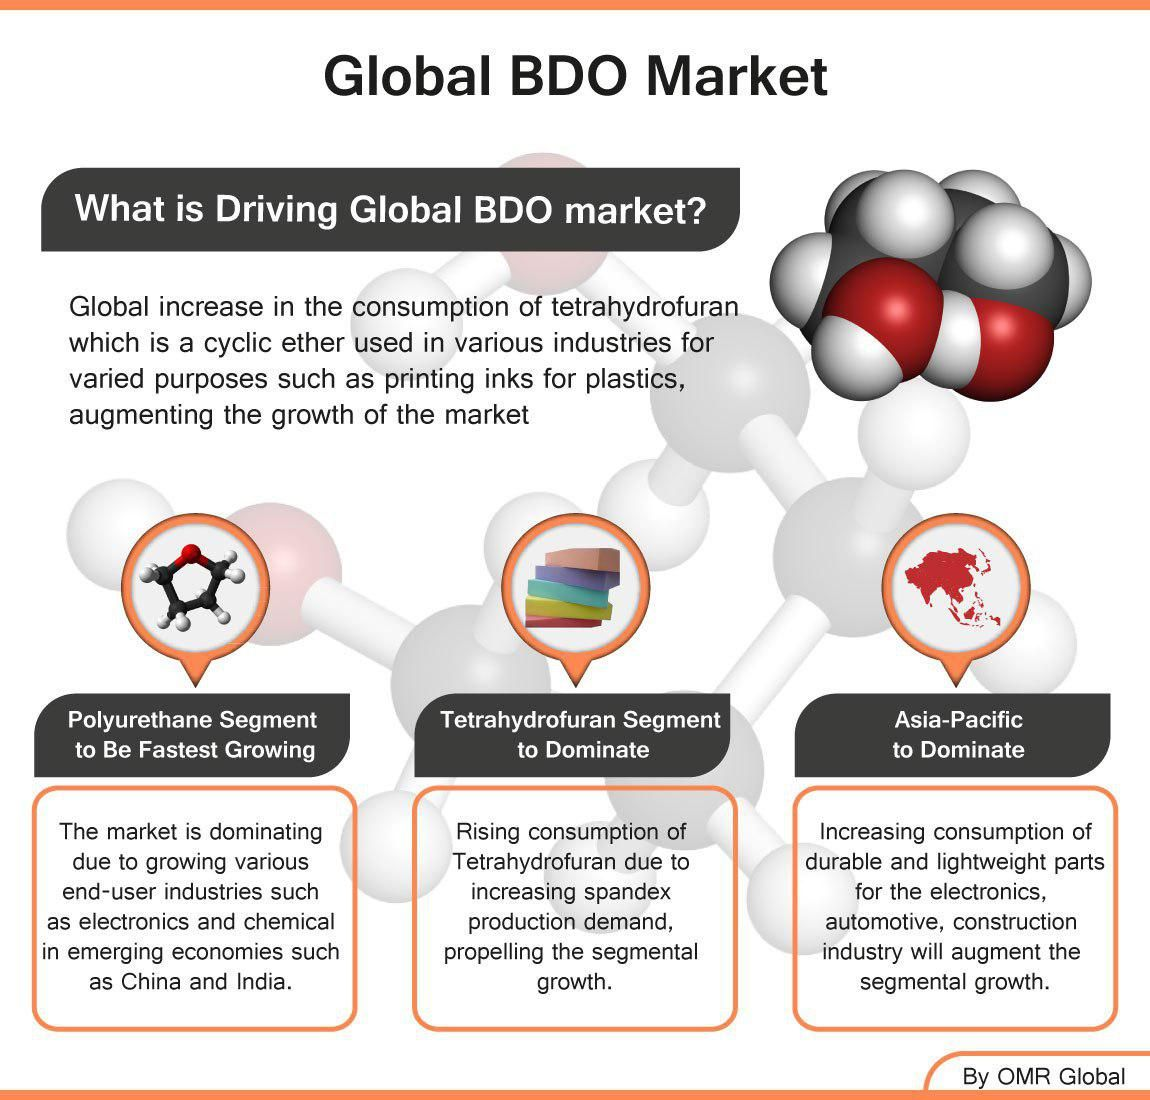 Global BDO Market Research and Forecast 2018-2023 | Chemicals